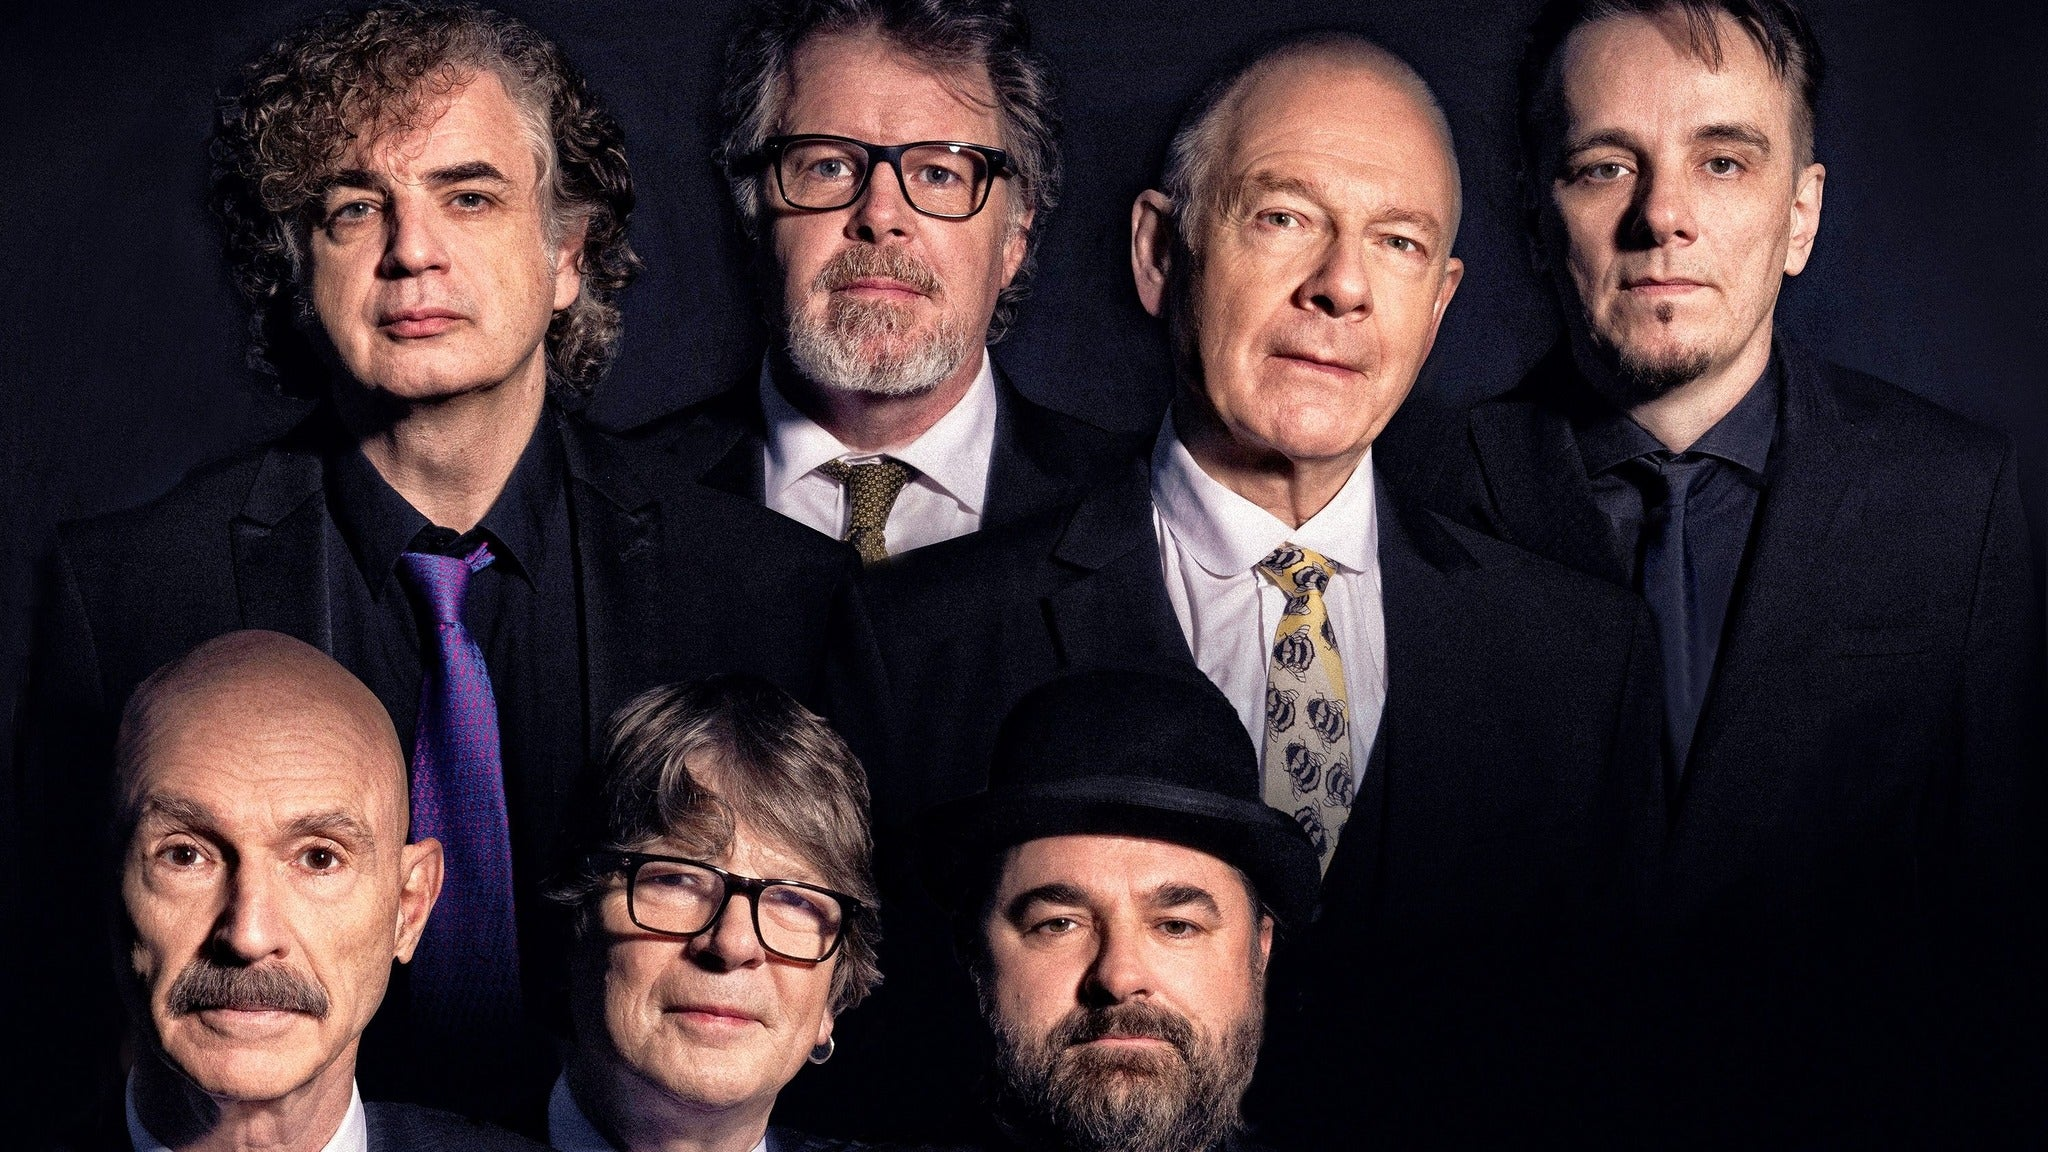 King Crimson With Special Guests: The Zappa Band presale password